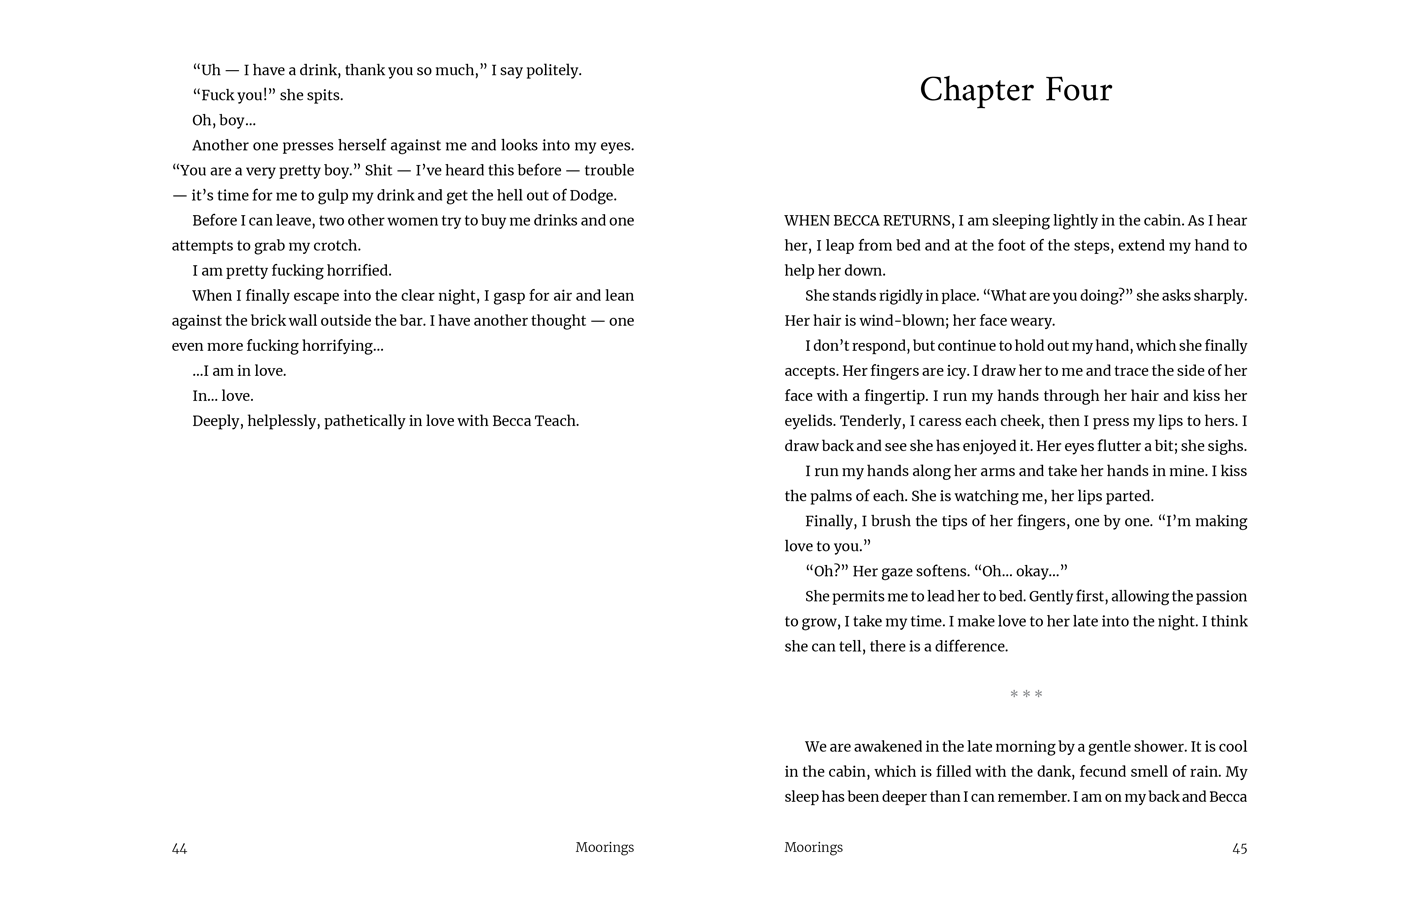 Chapter Four for Moorings